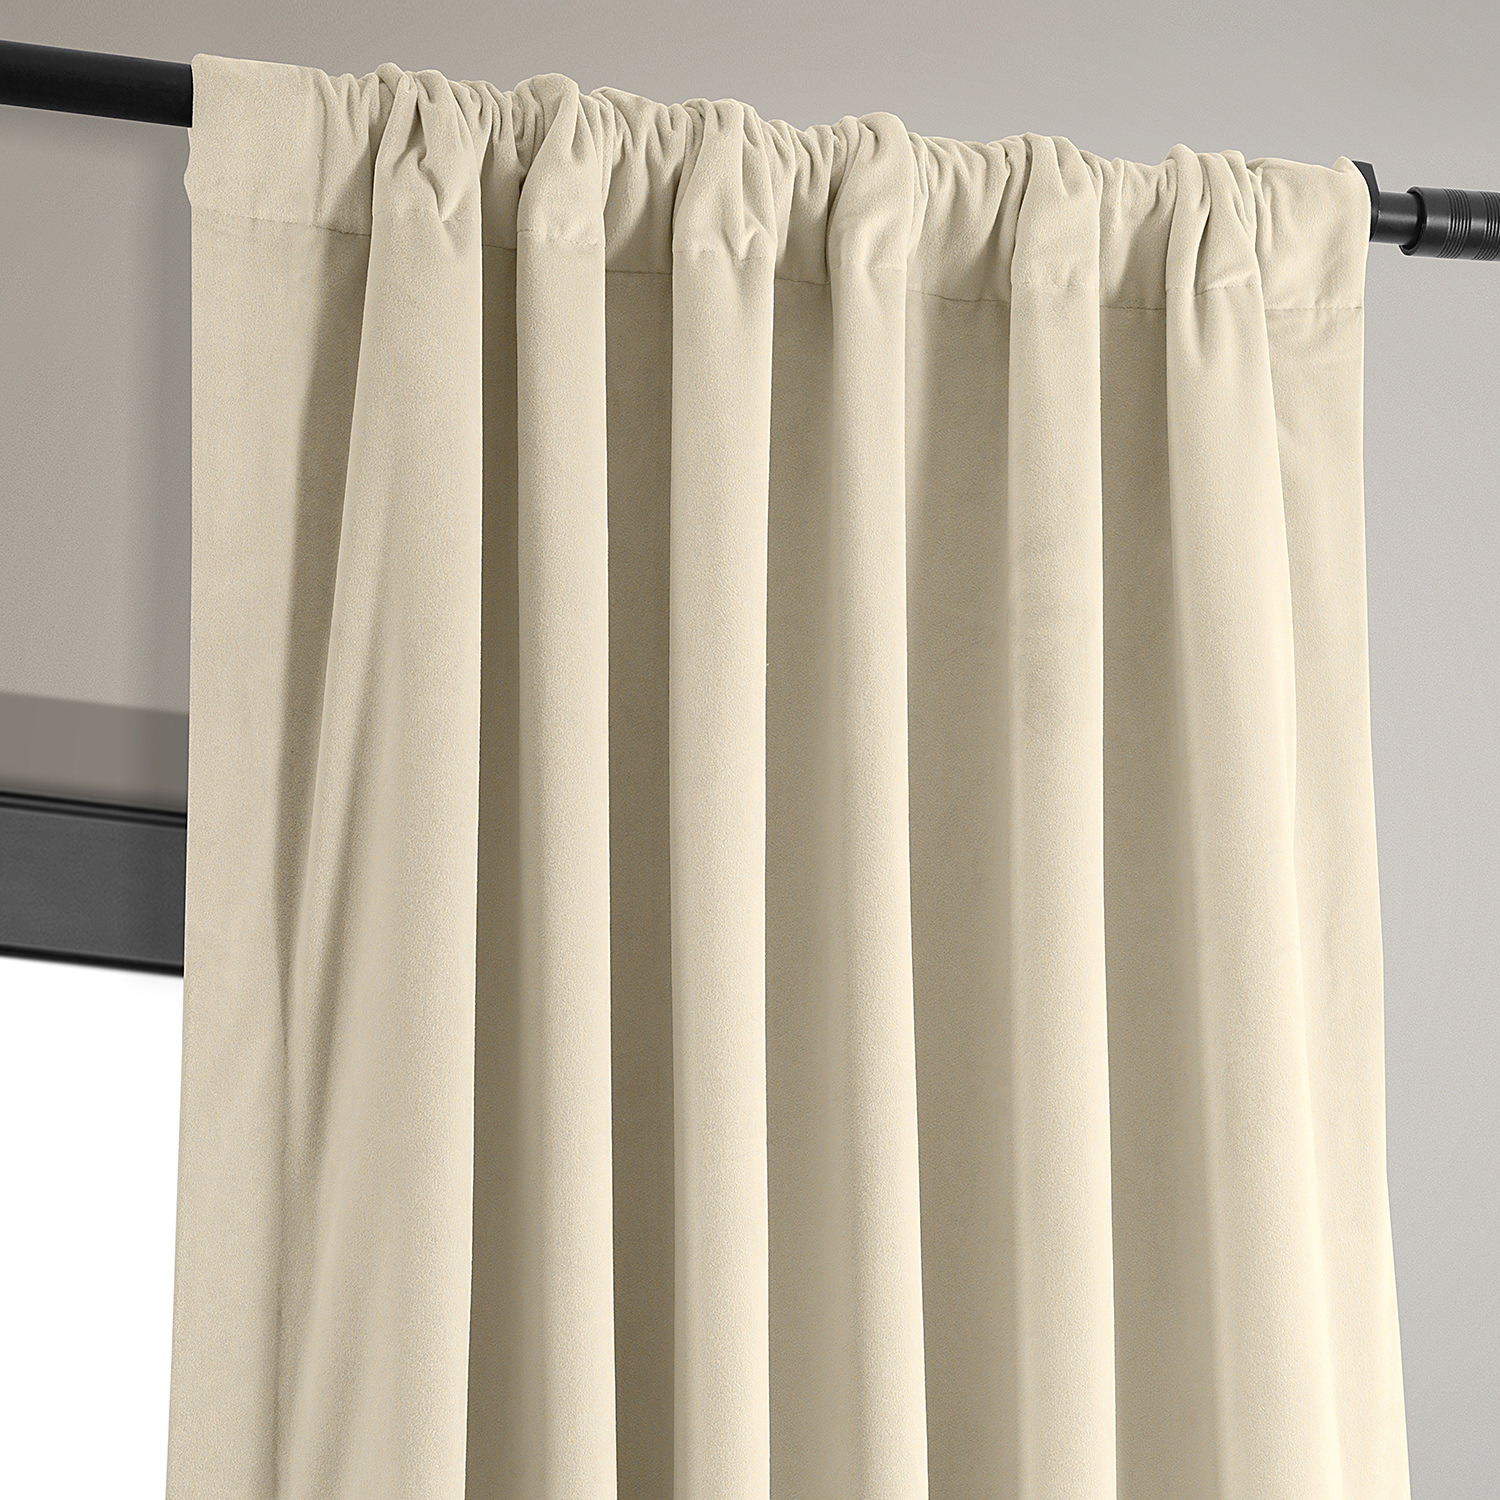 Signature Ivory Blackout Velvet Curtains & Drapes